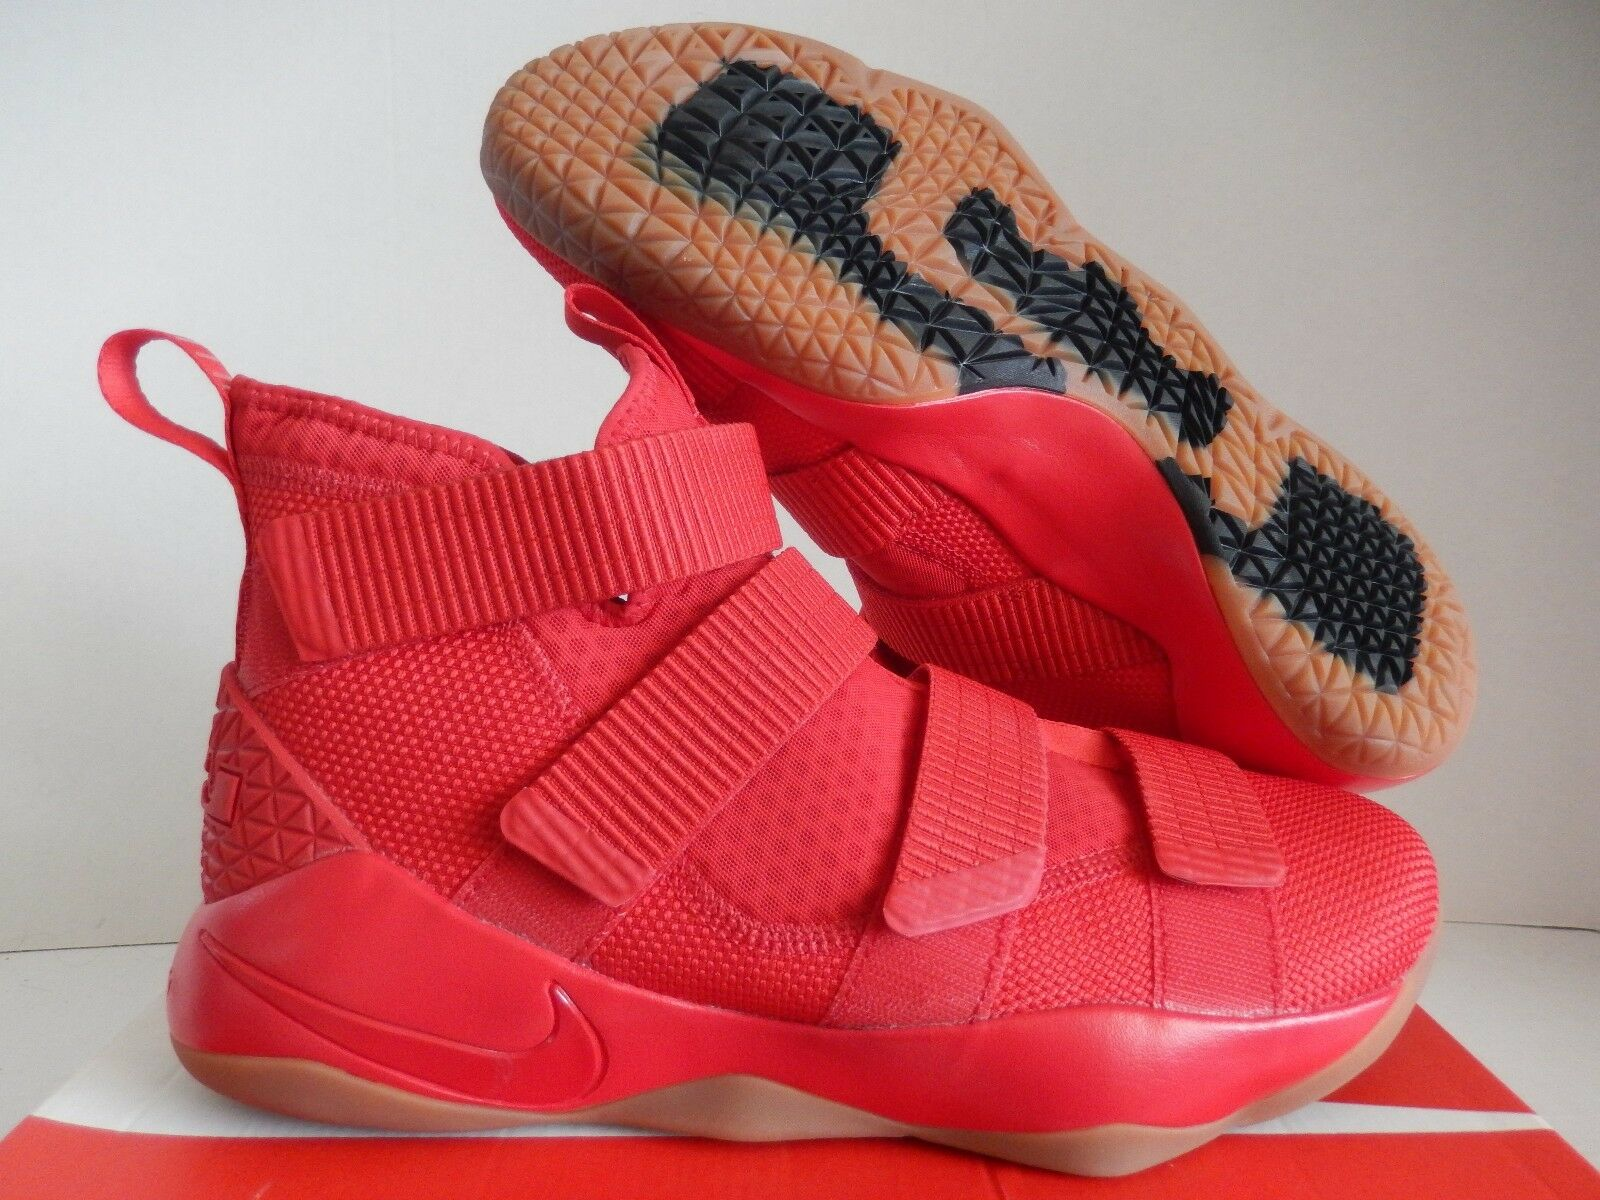 NIKE LEBRON SOLDIER XI SFG ID RED-RED-GUM BROWN SZ 11.5